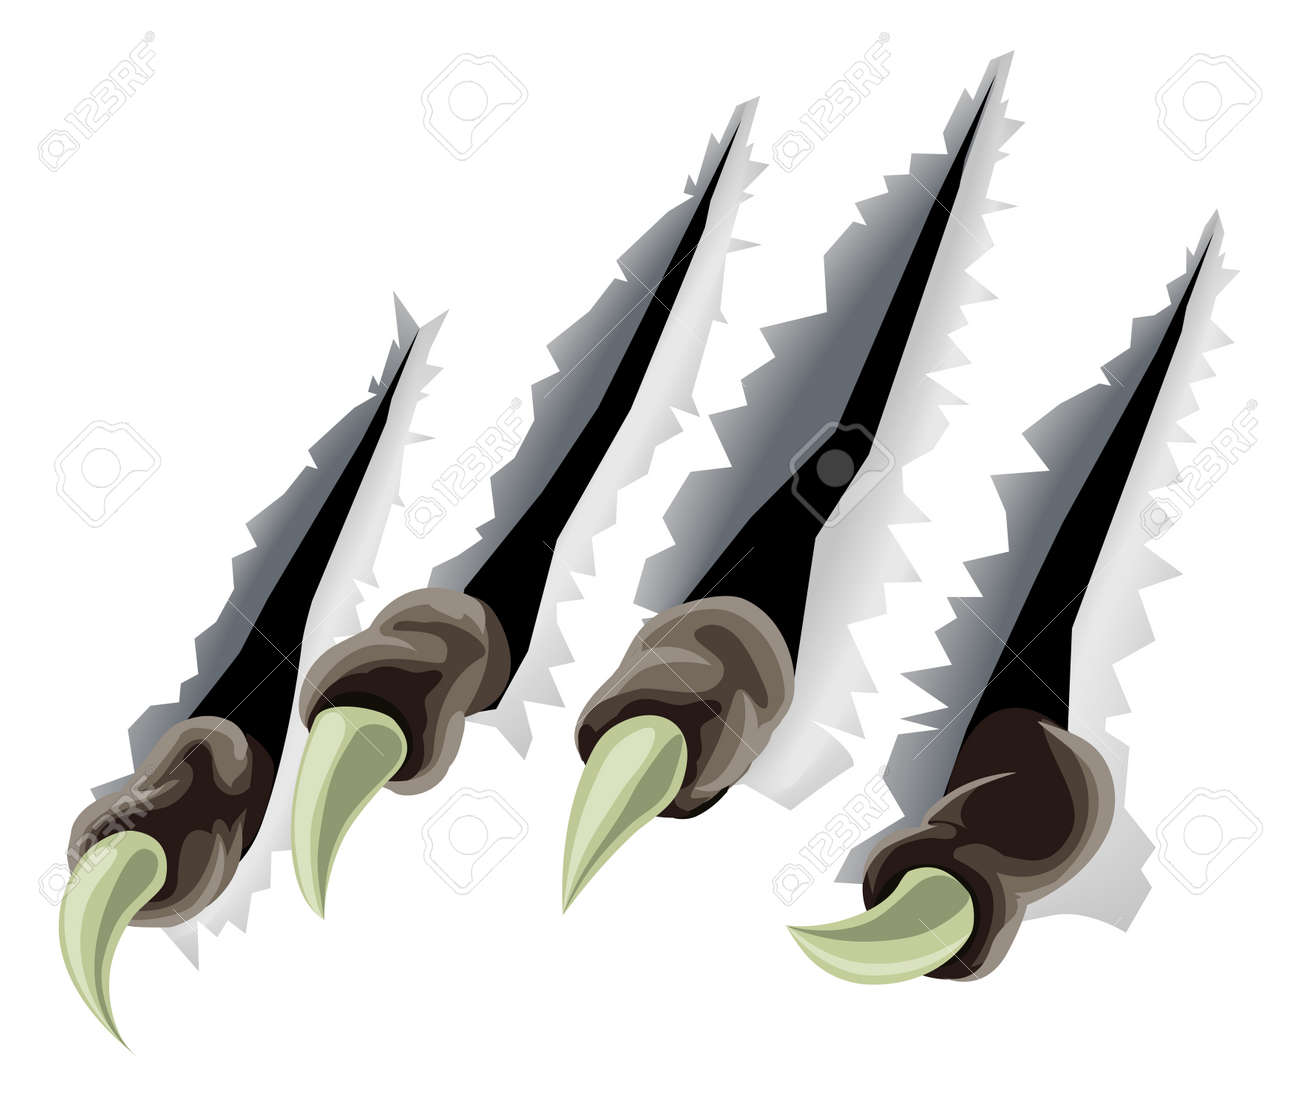 A scary creature's claws tearing through background making slashes or tears Stock Vector - 10358593